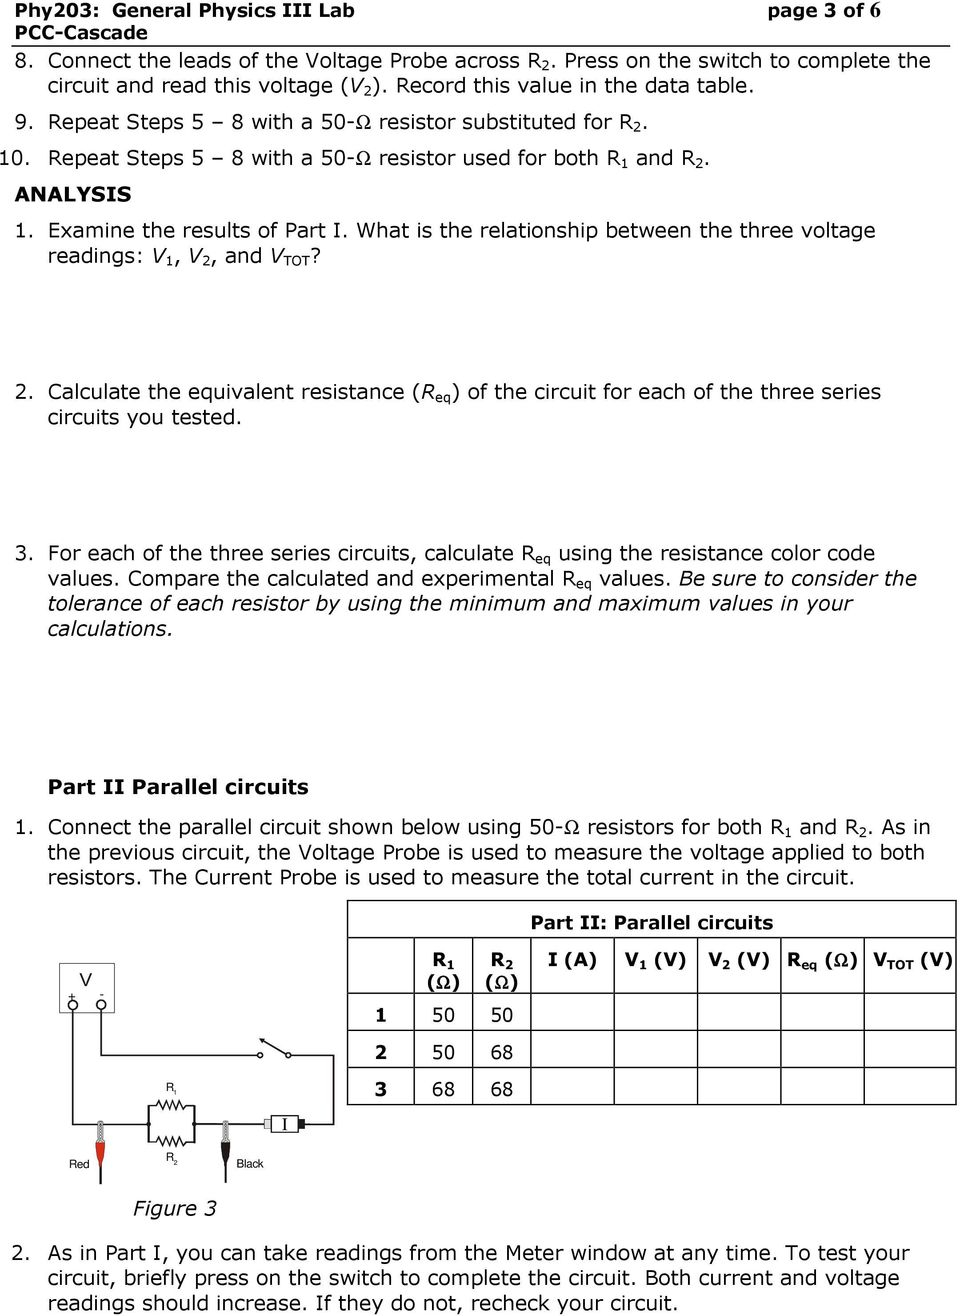 Experiment: Series and Parallel Circuits - PDF